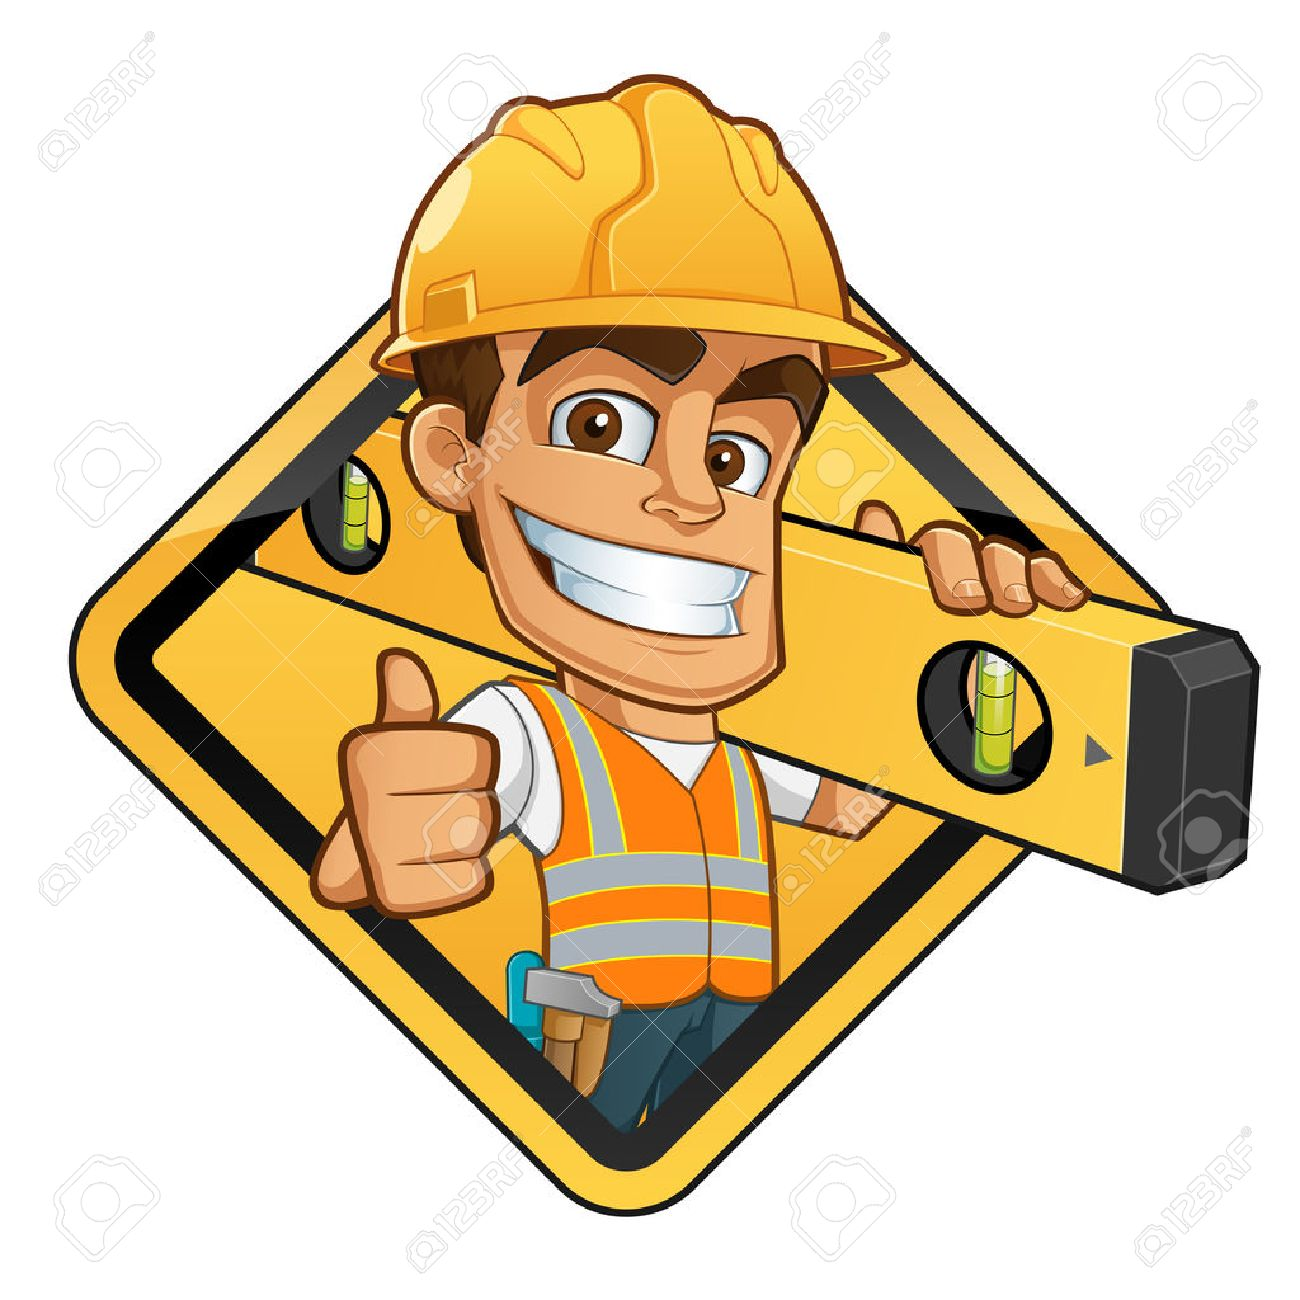 Friendly builder with helmet, carrying a level bubble and a belt with tools - 44065066